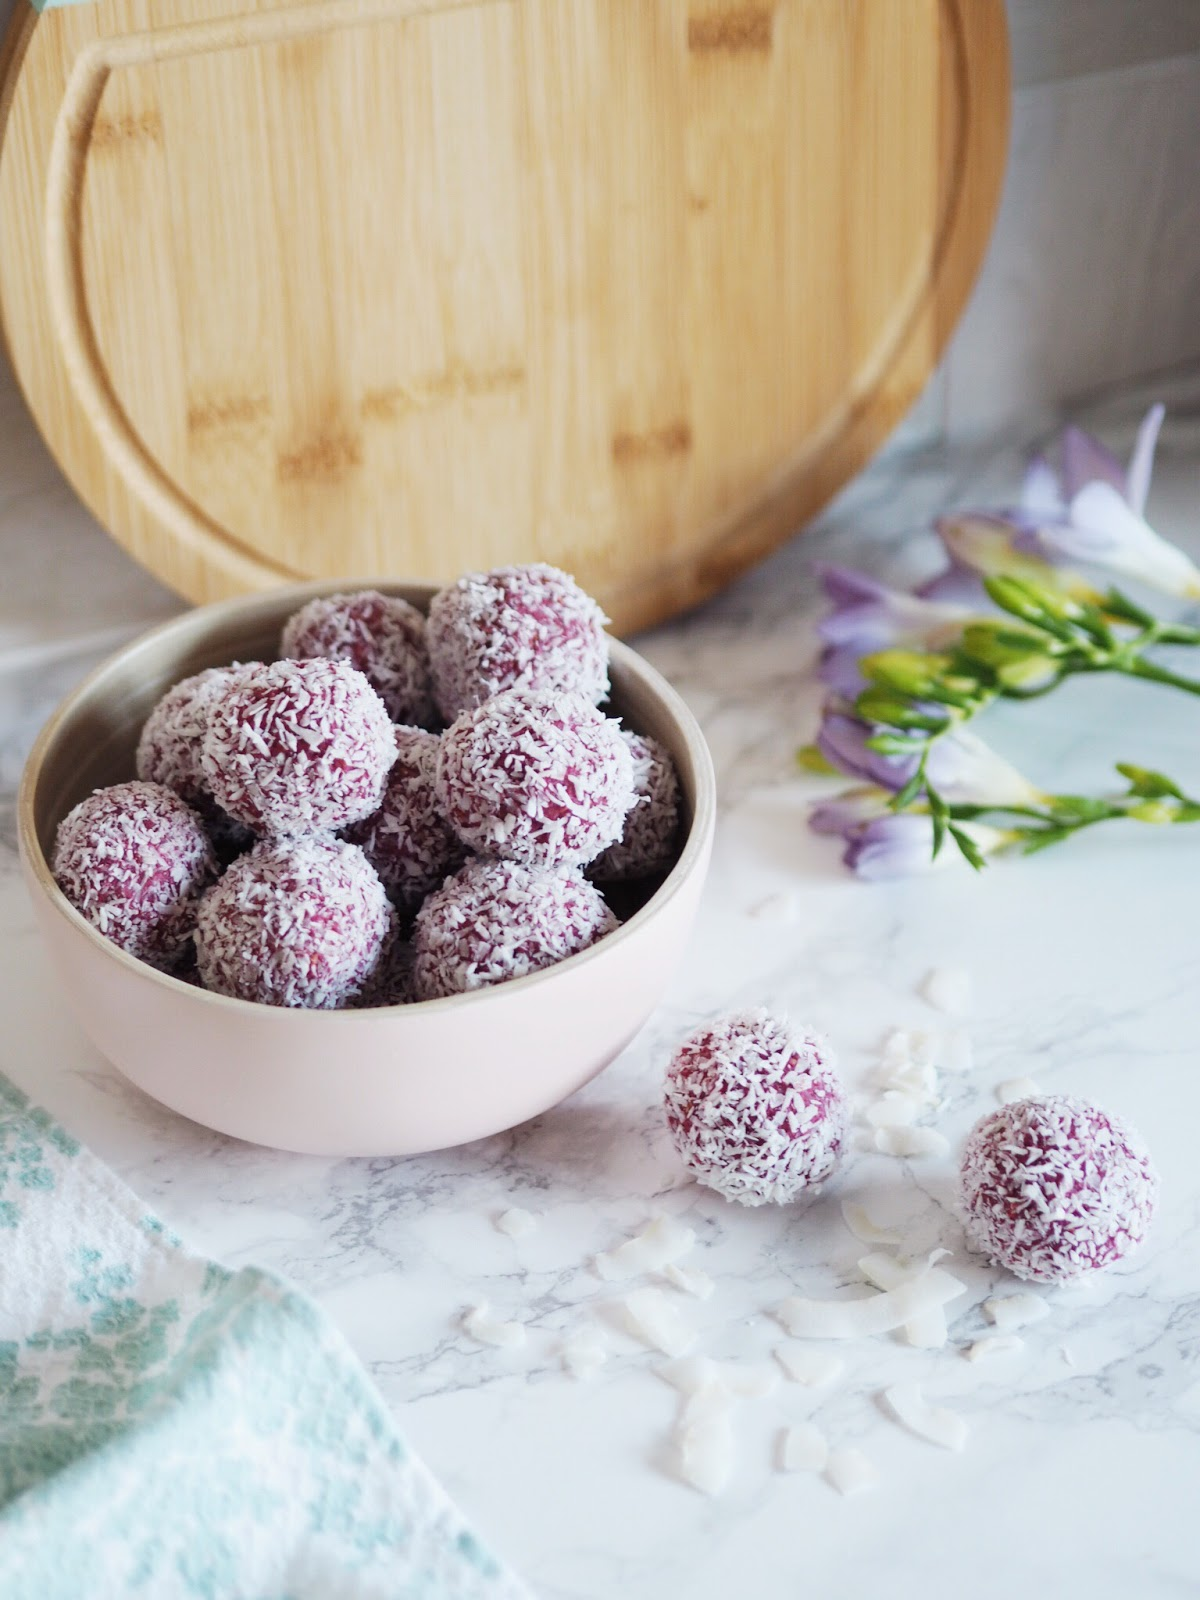 Raspberry & Coconut Protein Energy Balls